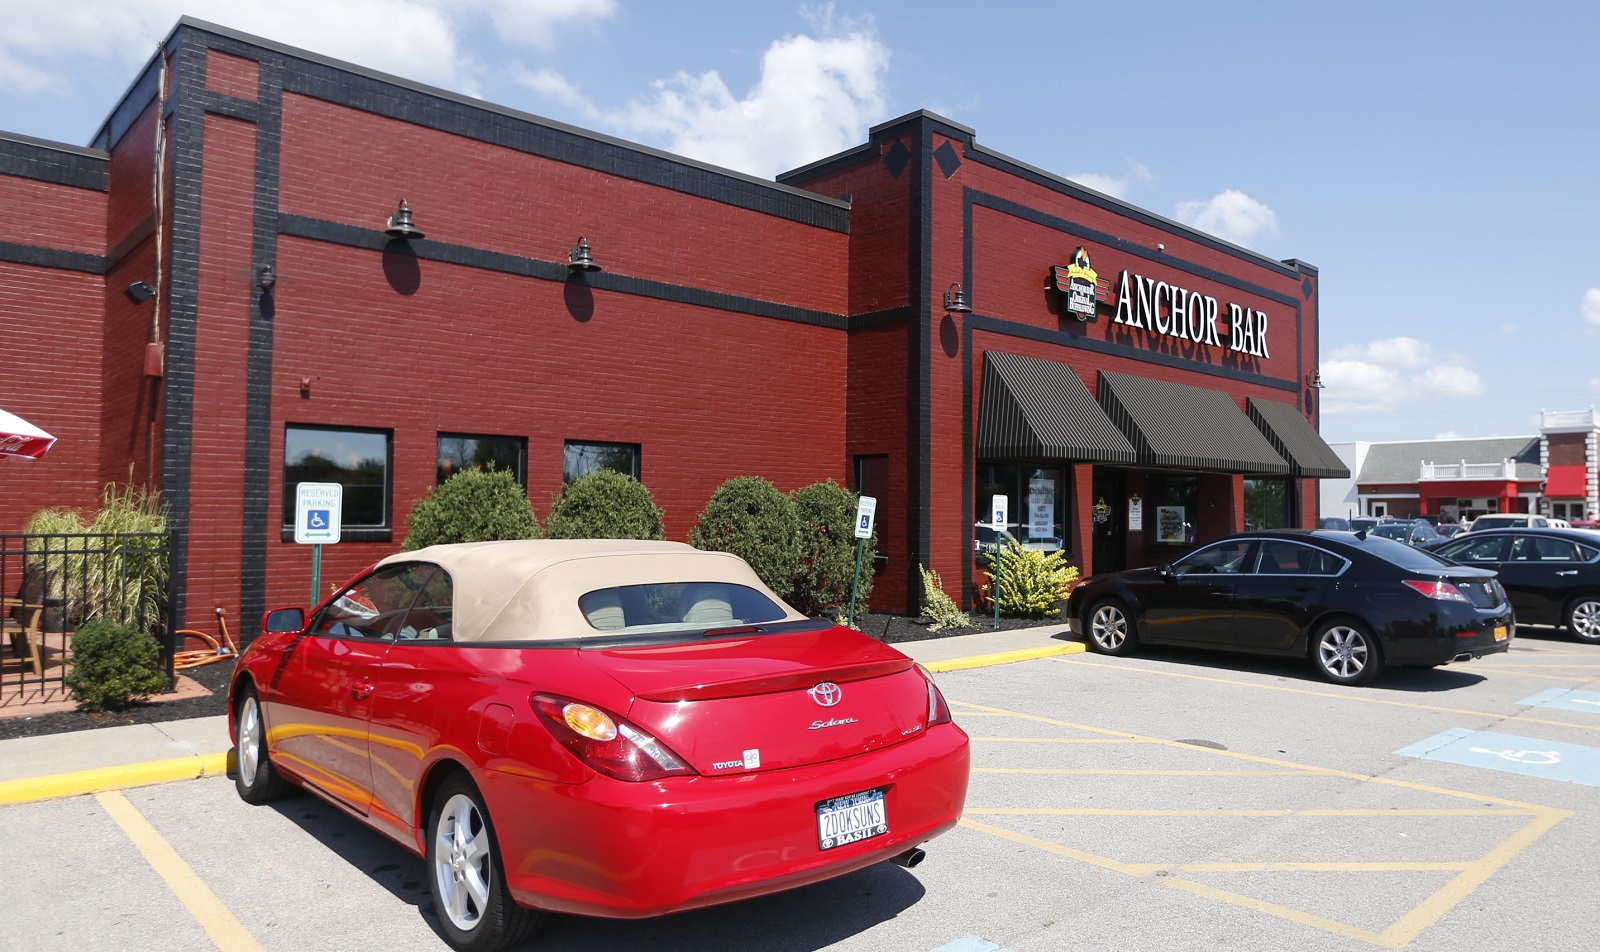 The new Anchor Bar opened on Maple Road in Amherst in August. (Robert Kirkham/Buffalo News file photo)